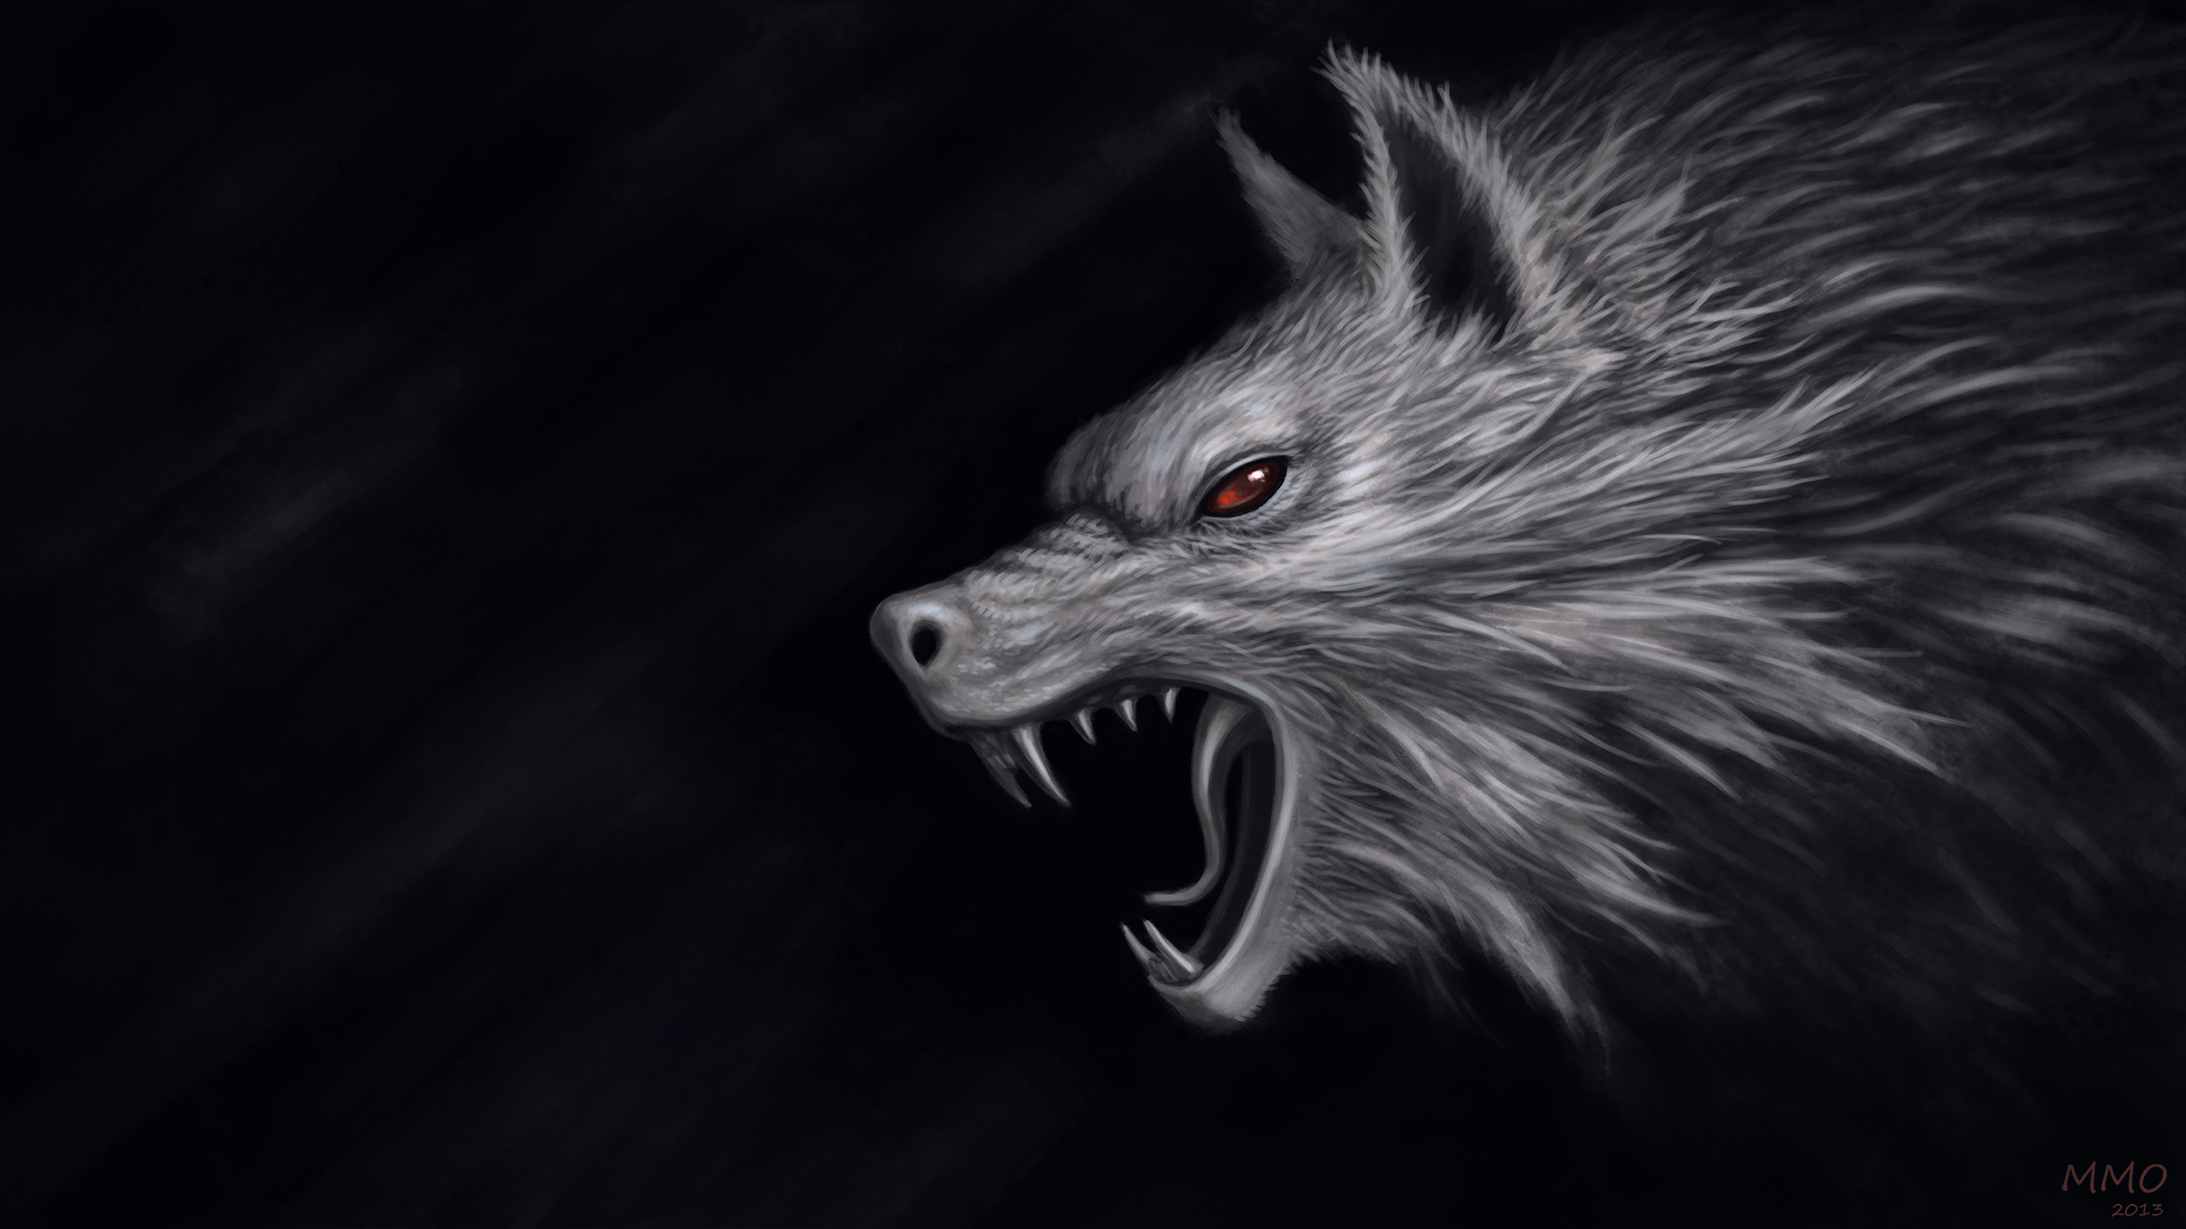 HD Wolf Wallpapers - Wallpaper Cave